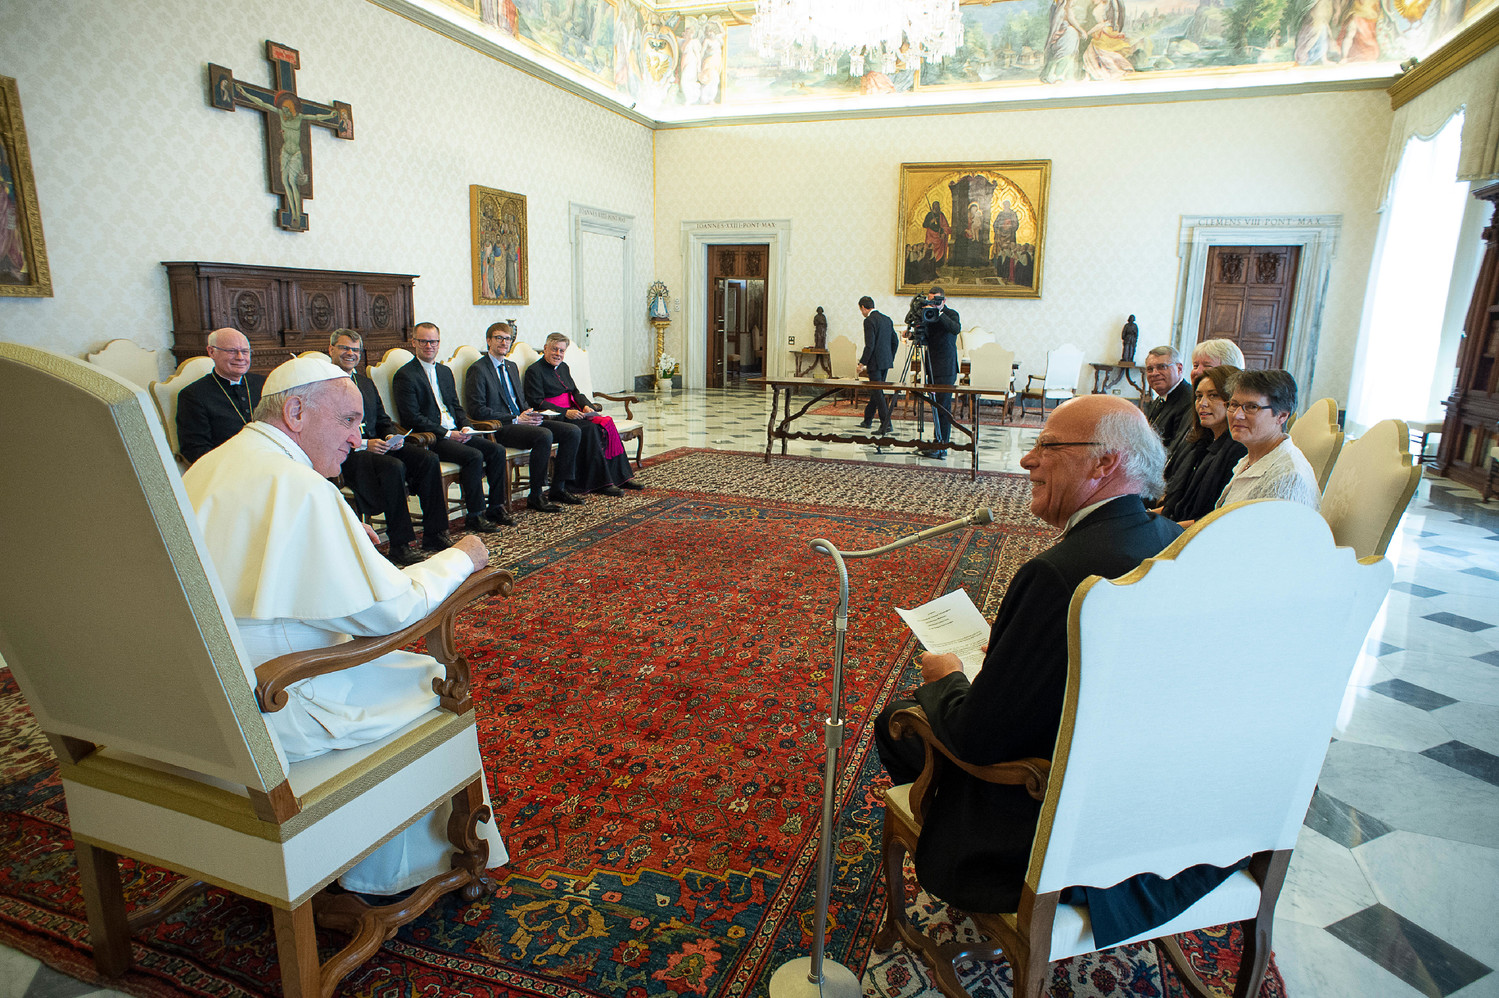 Pope Francis meets with a delegation from the Evangelical Lutheran Church of Germany at the Vatican June 4. The Pope urged patient progress in ecumenical dialogue. The same day, the Vatican confirmed the Pope had asked Germany's Catholic bishops not to publish guidelines that would relax restrictions on when Protestants married to Catholics could receive Communion.